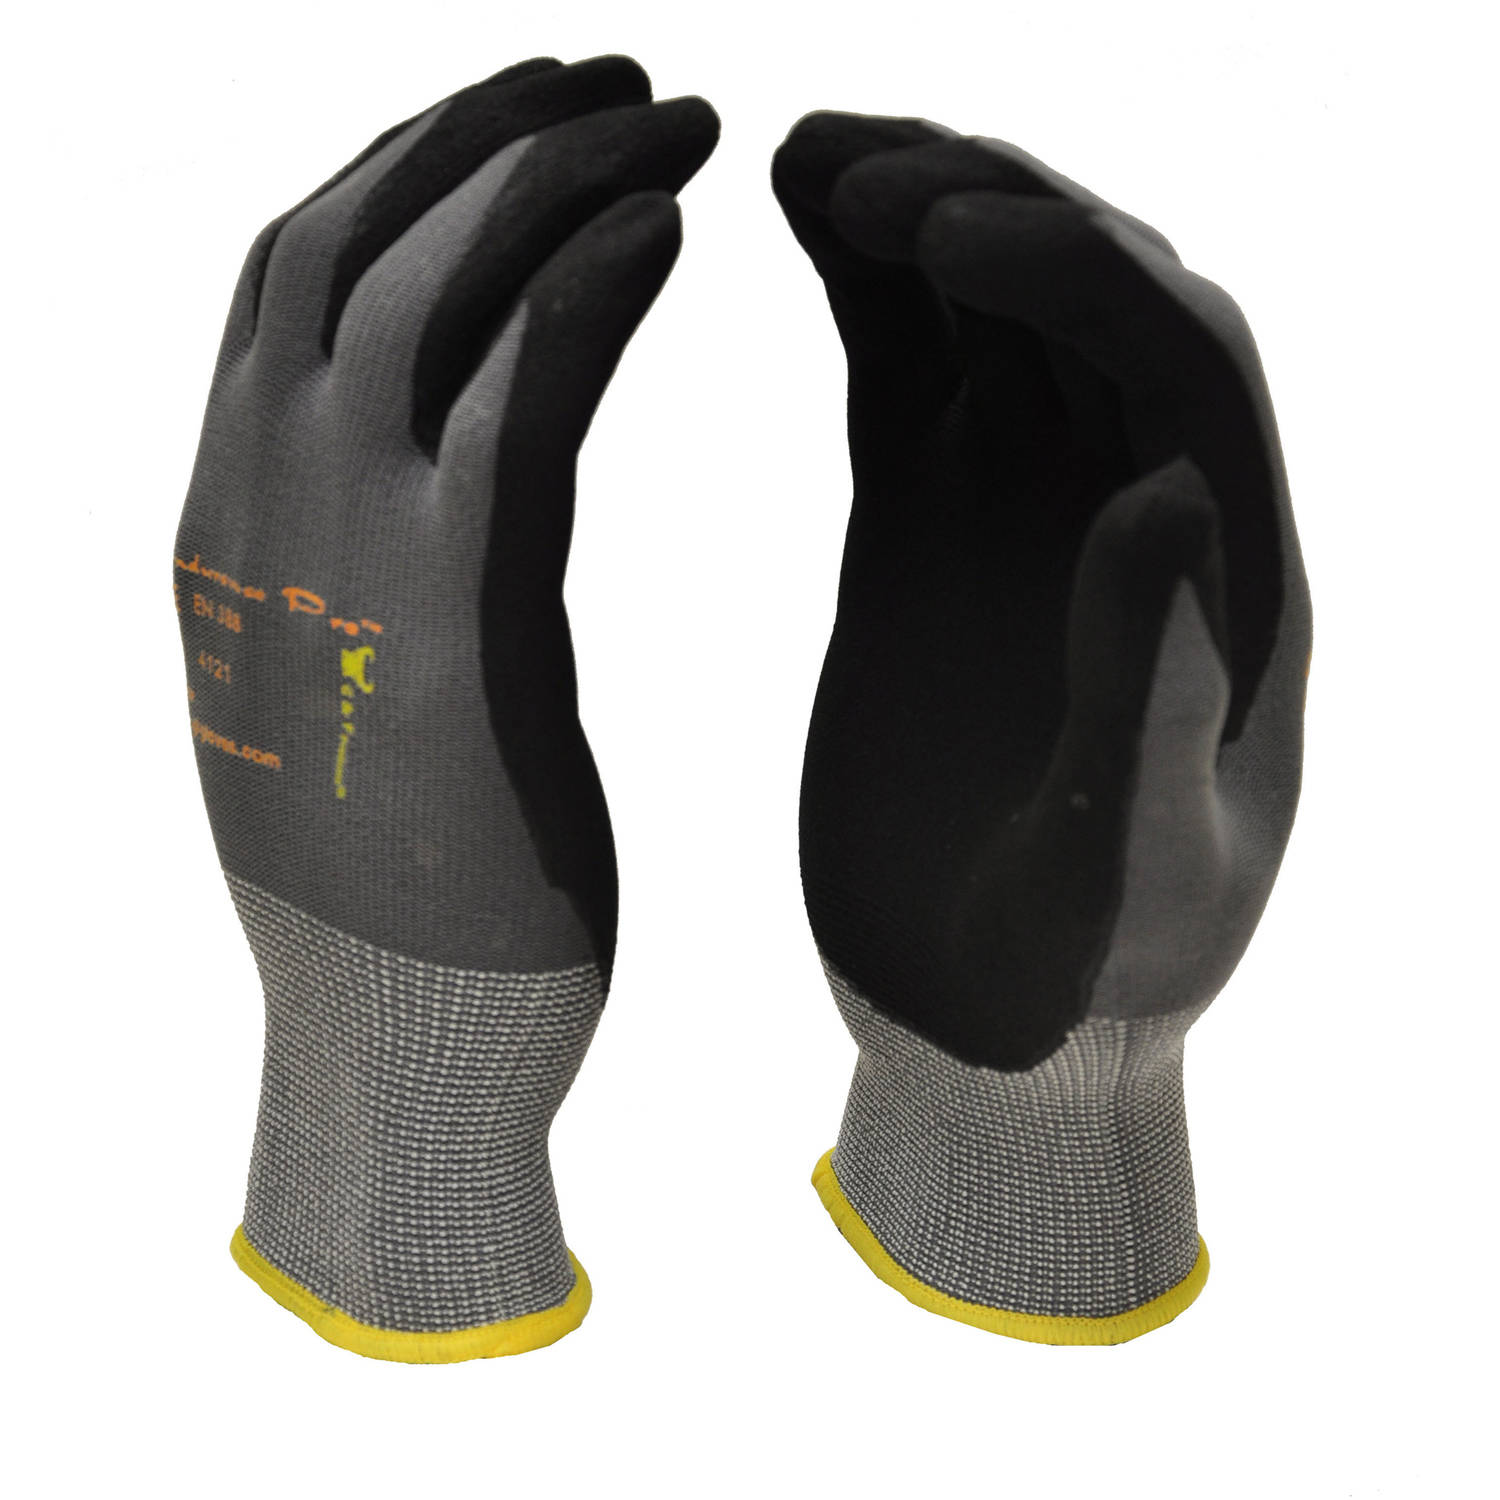 G & F EndurancePro Seamless Knit Nylon Gloves with Micro-foam Nitrile-Coated Palm, Men's X-Large, Black